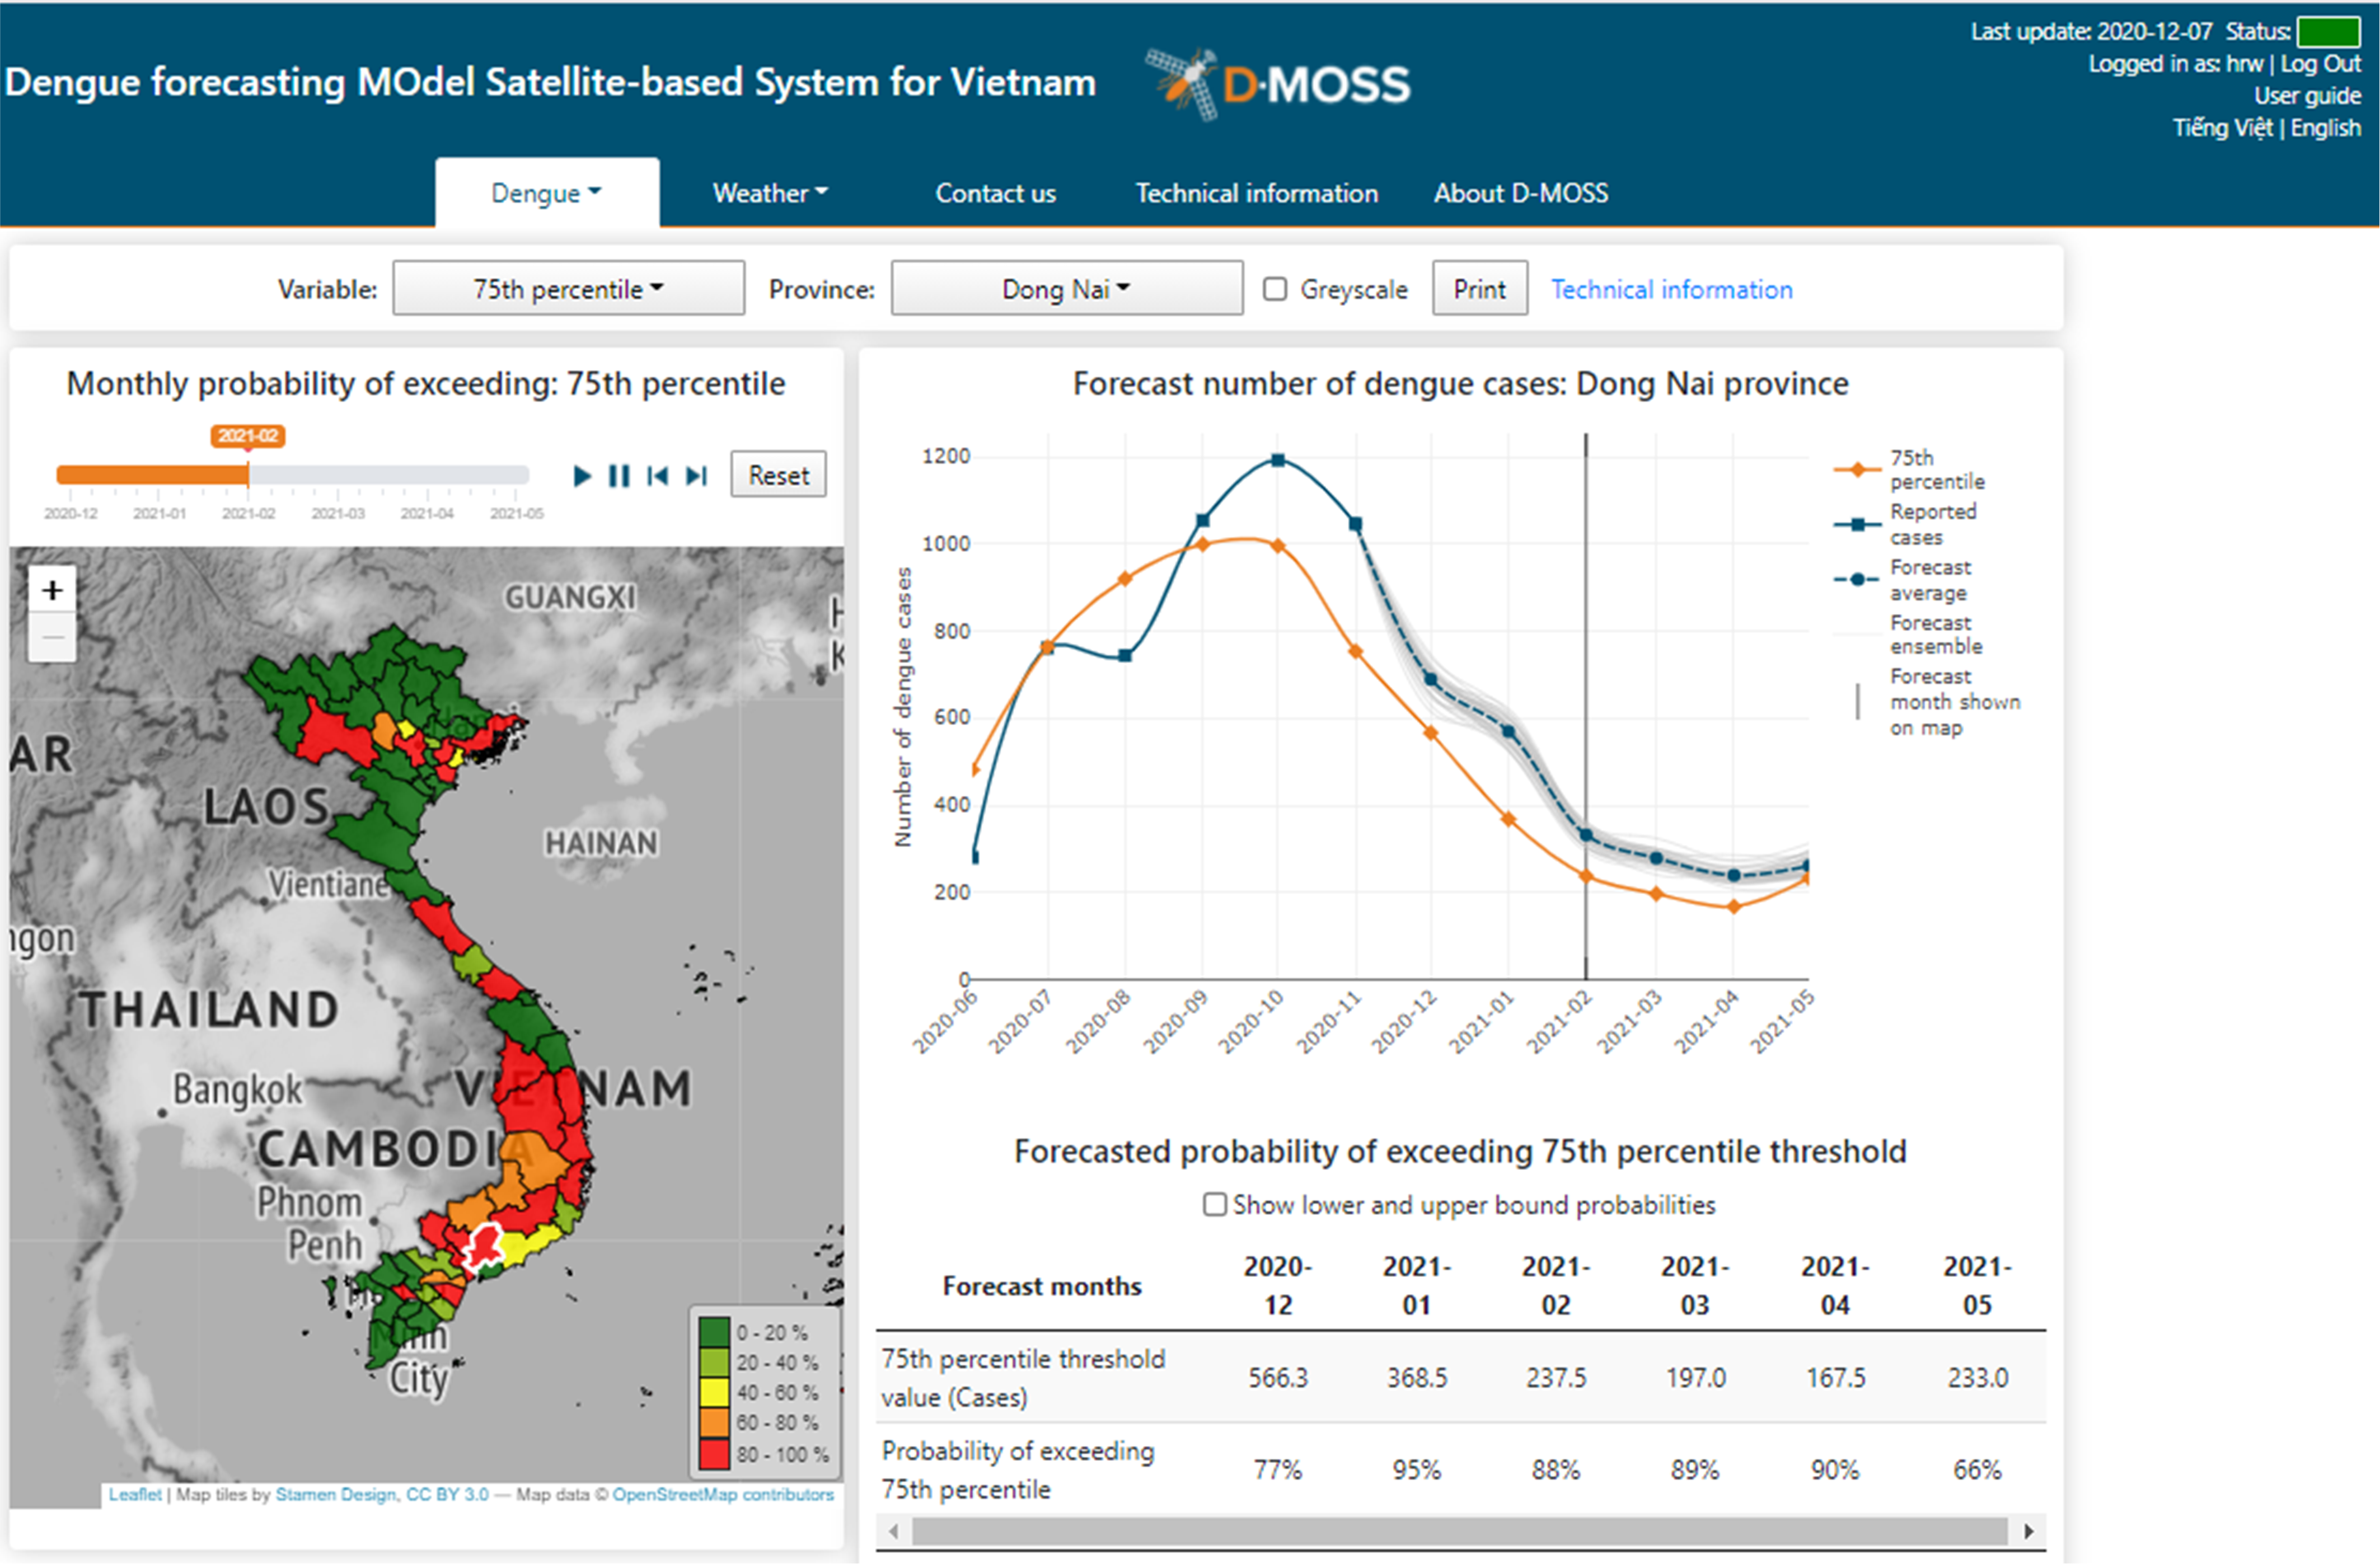 Figure 2: English version of the D-MOSS graphical user interface showing the forecast number of dengue cases for the province of Dong Nai over the next six months.